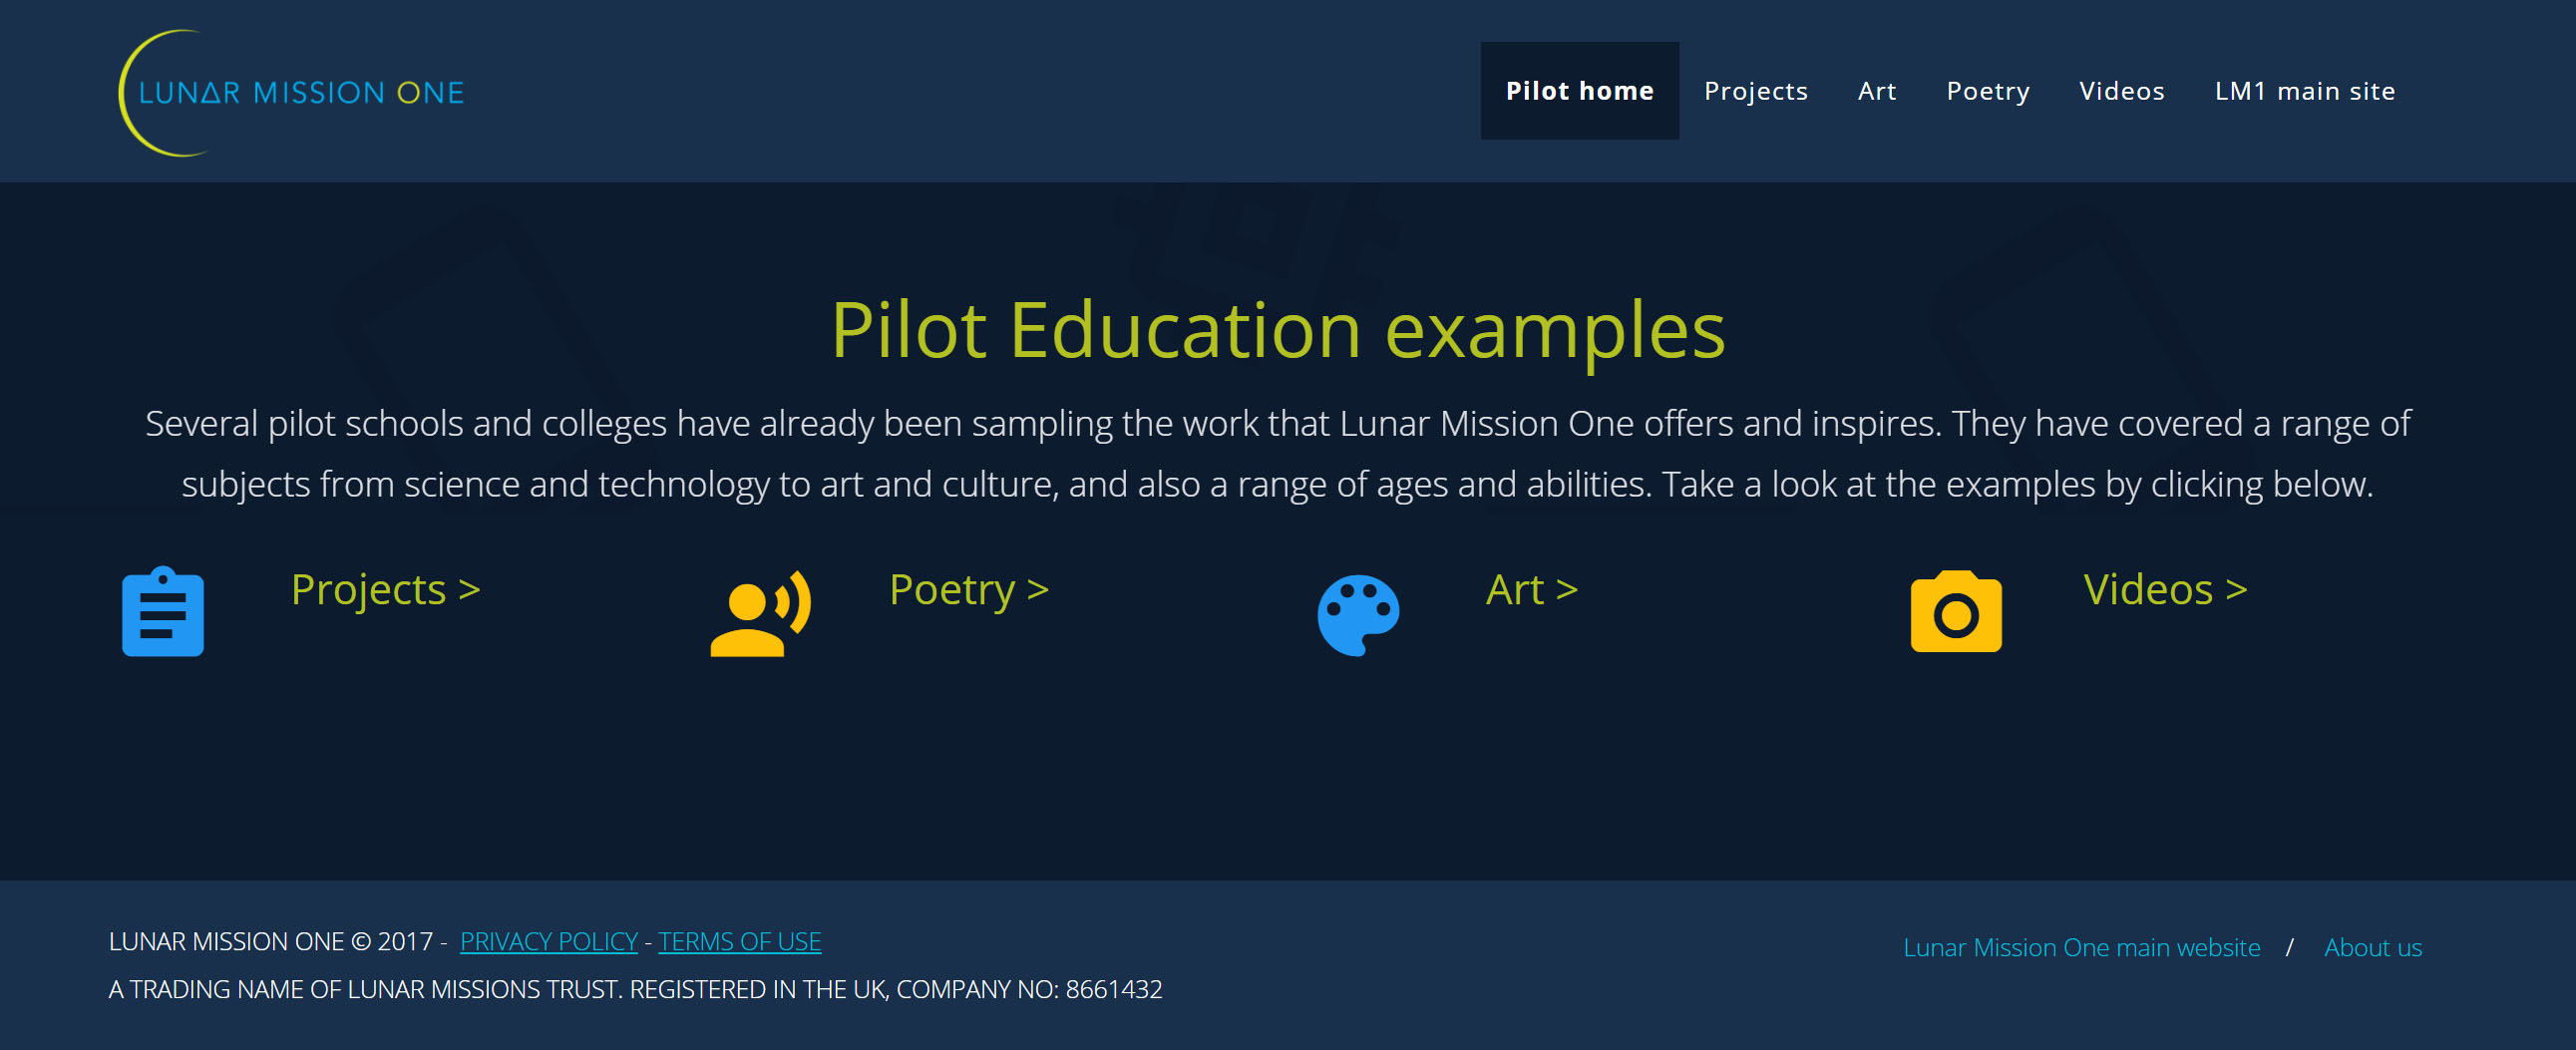 Pilot Education examples site